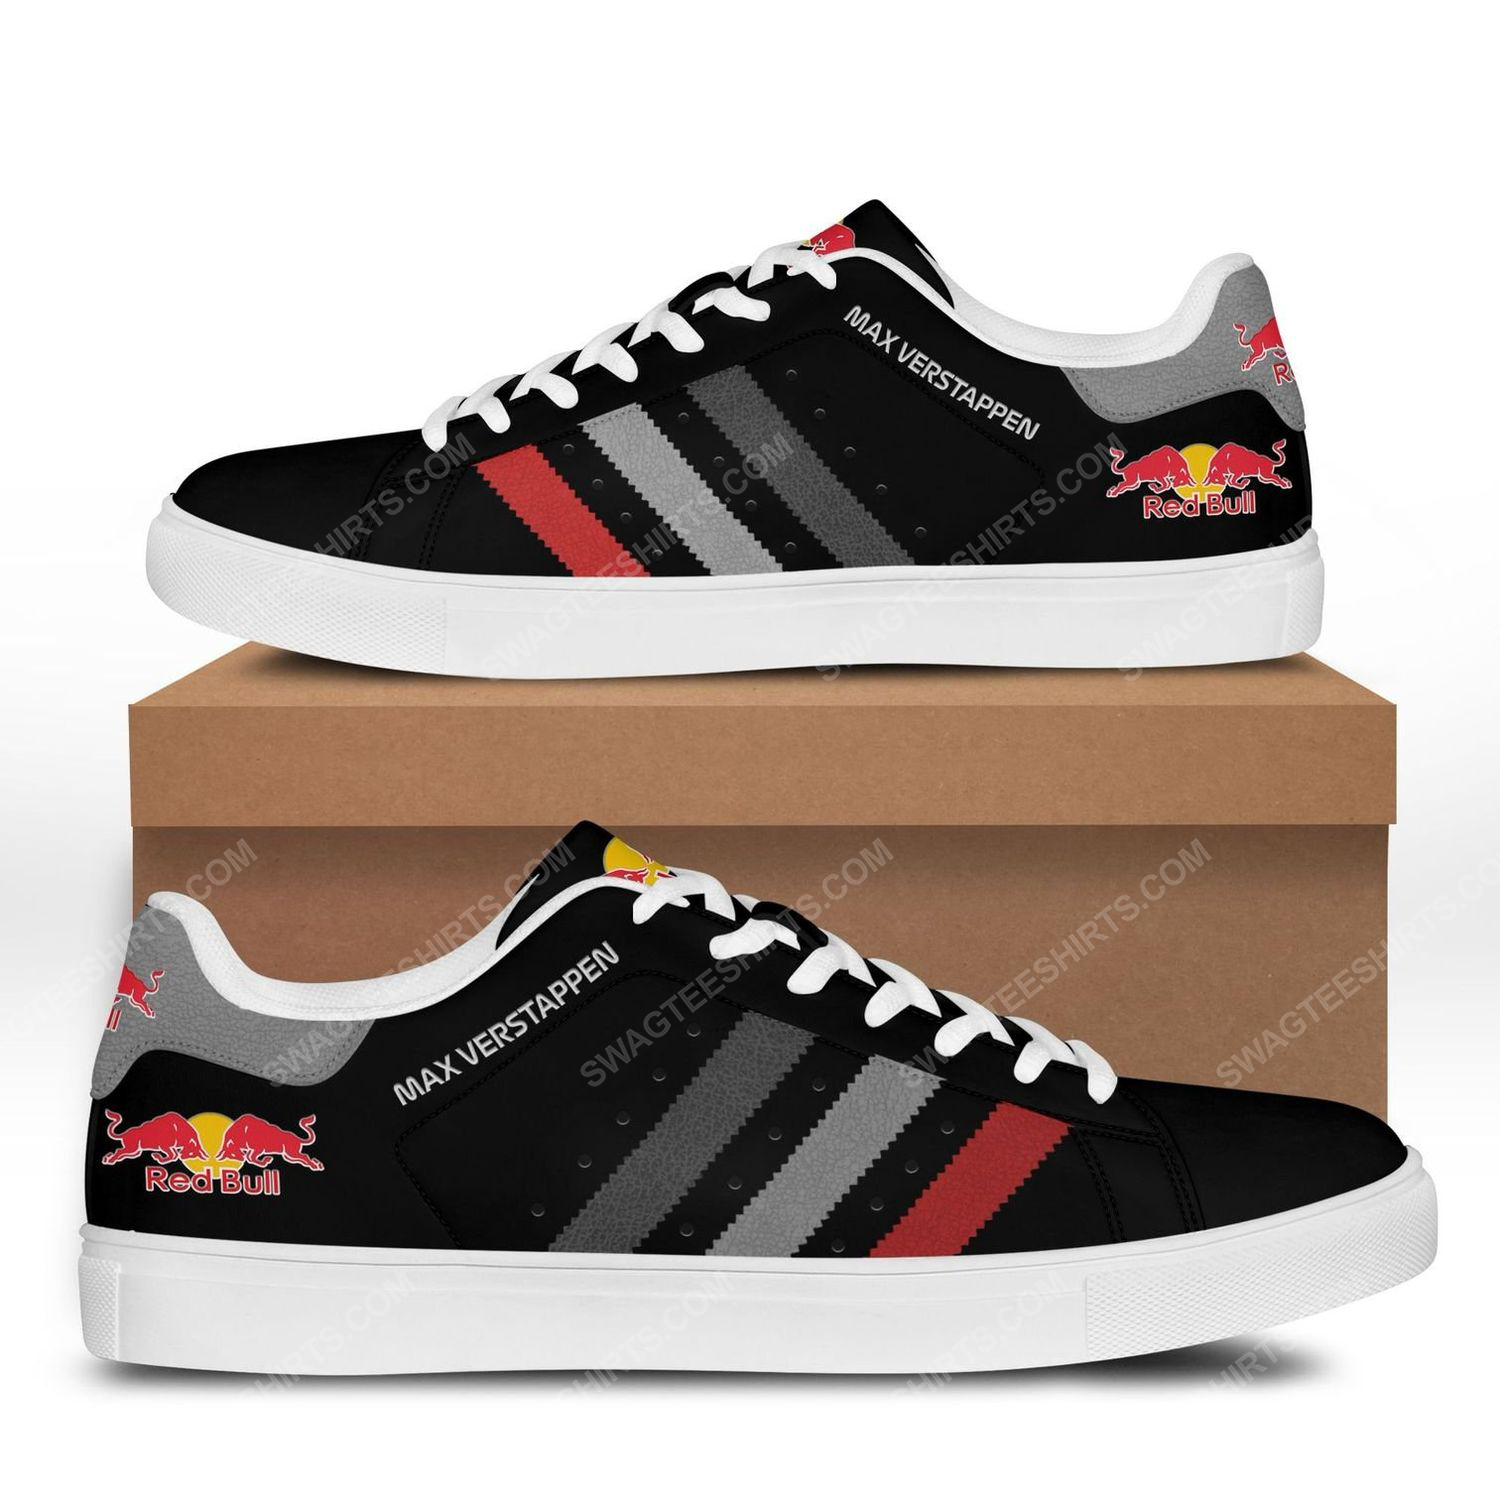 Max verstappen red bull stan smith shoes 3